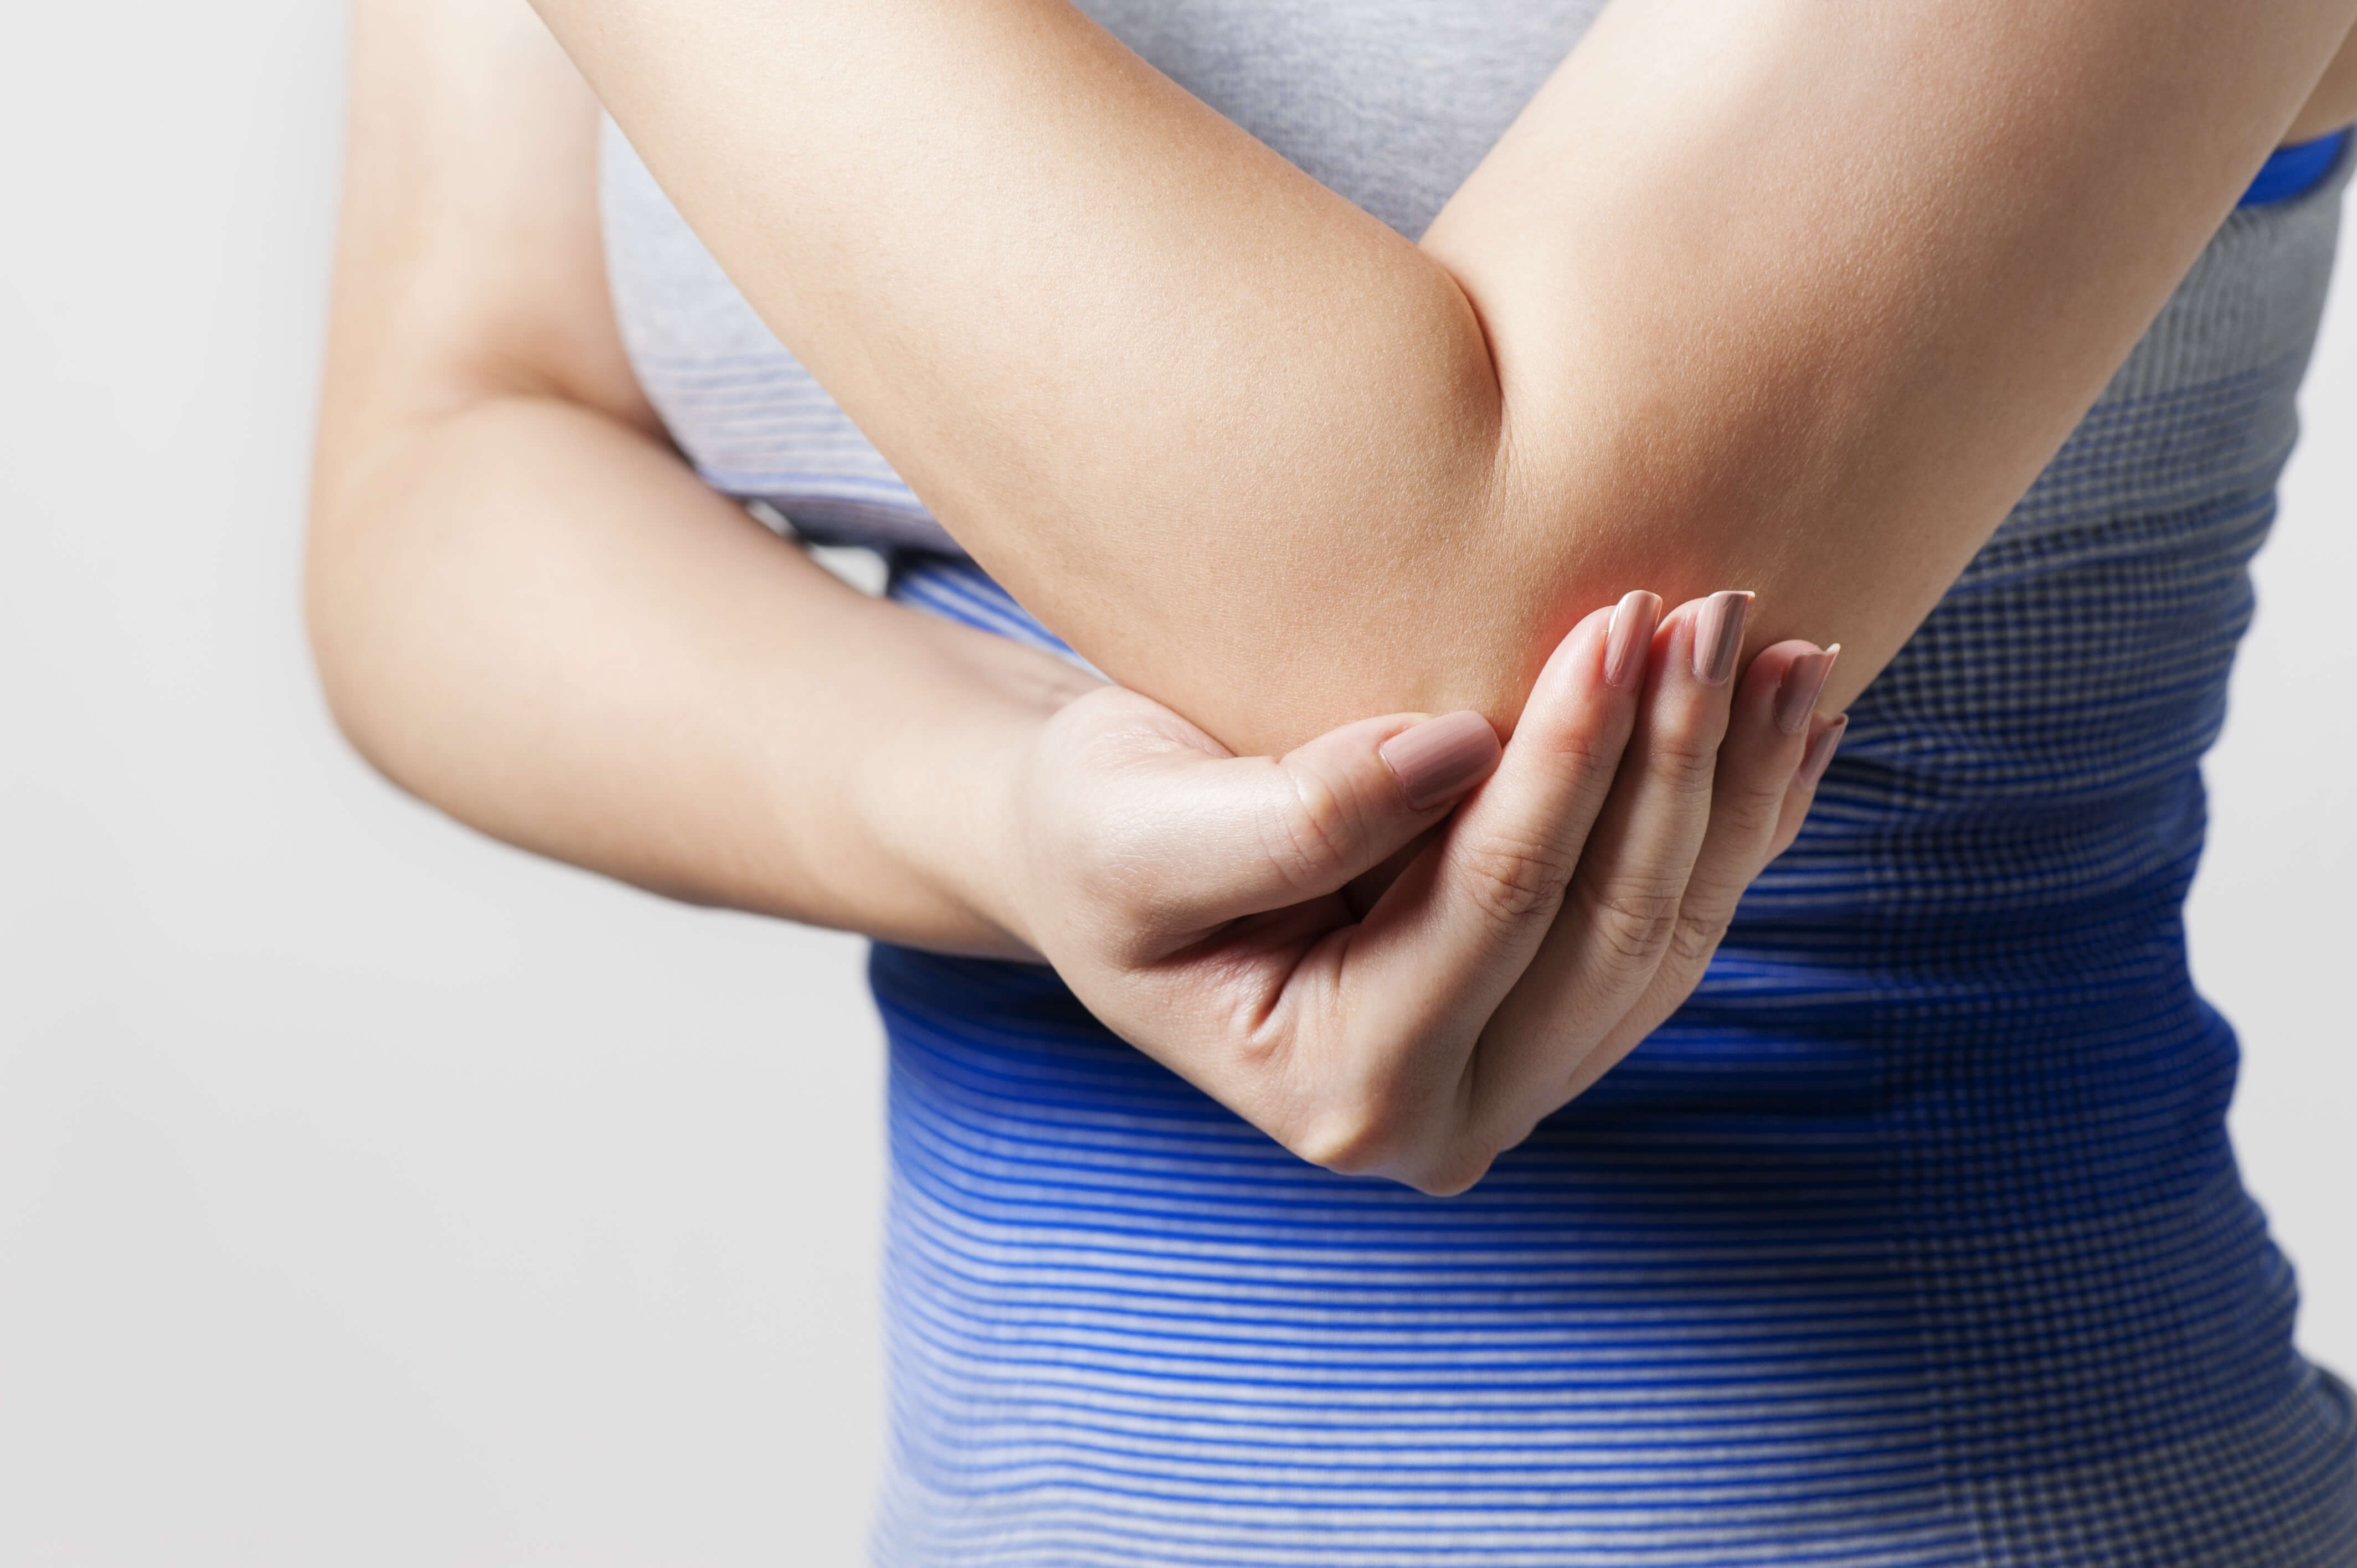 Overview of Elbow Pain